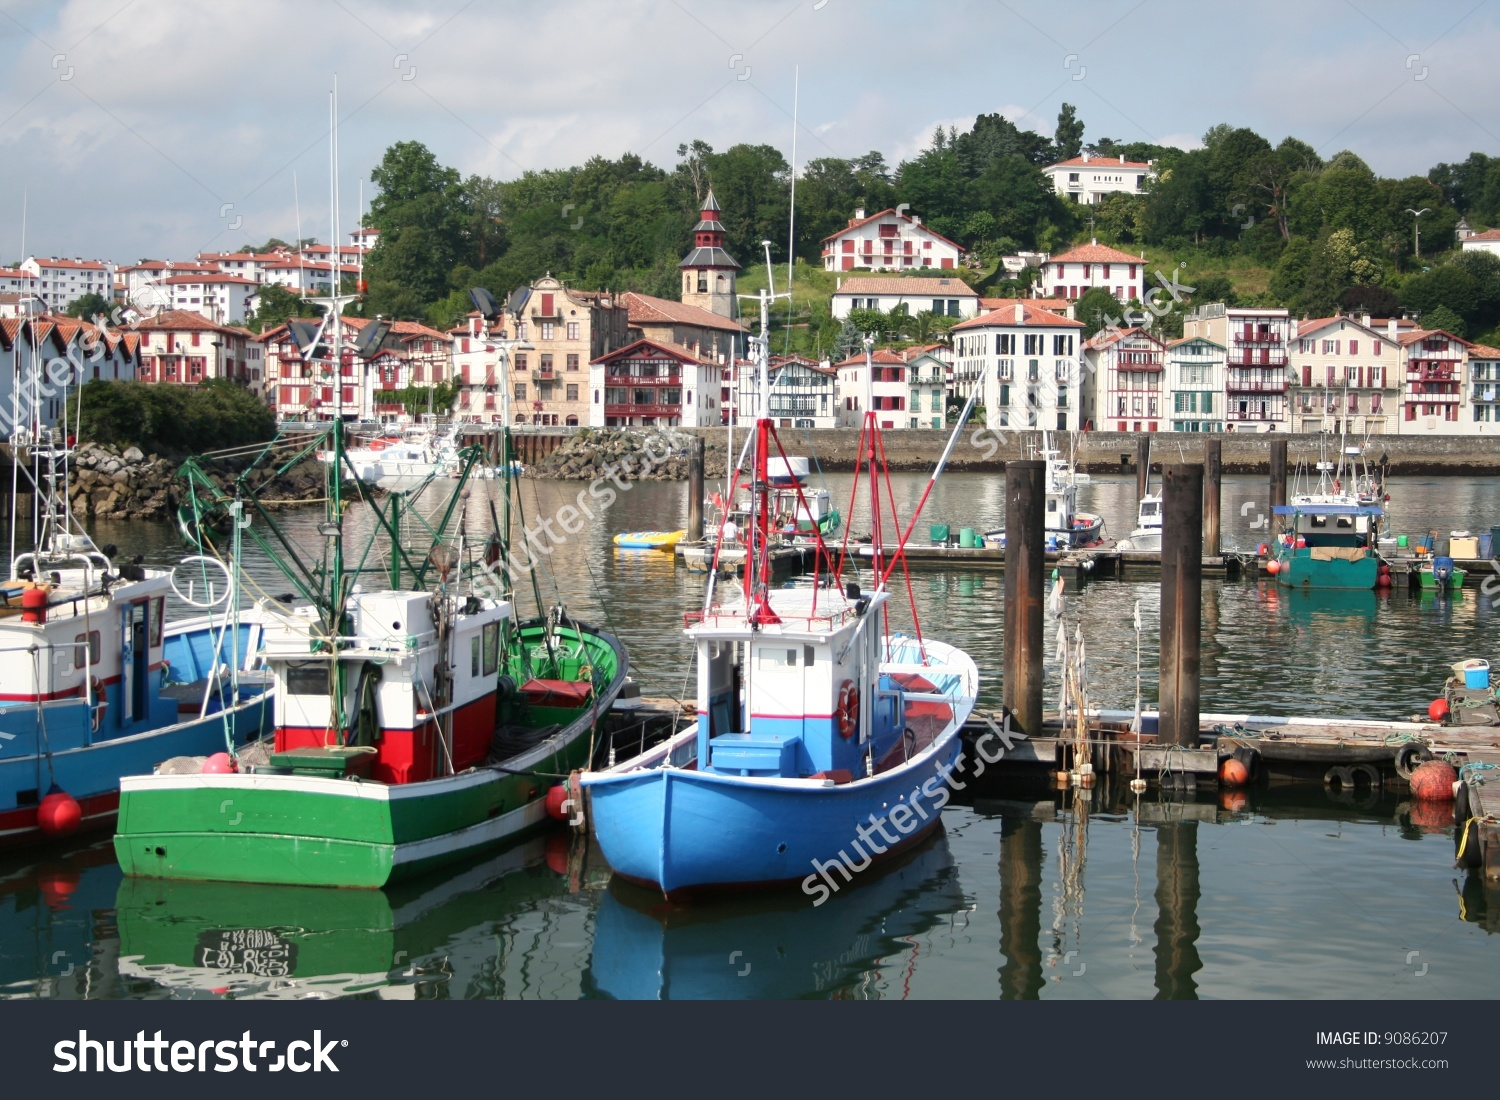 Fishing Harbor Of The Village St Jean De Luz In France Stock Photo.